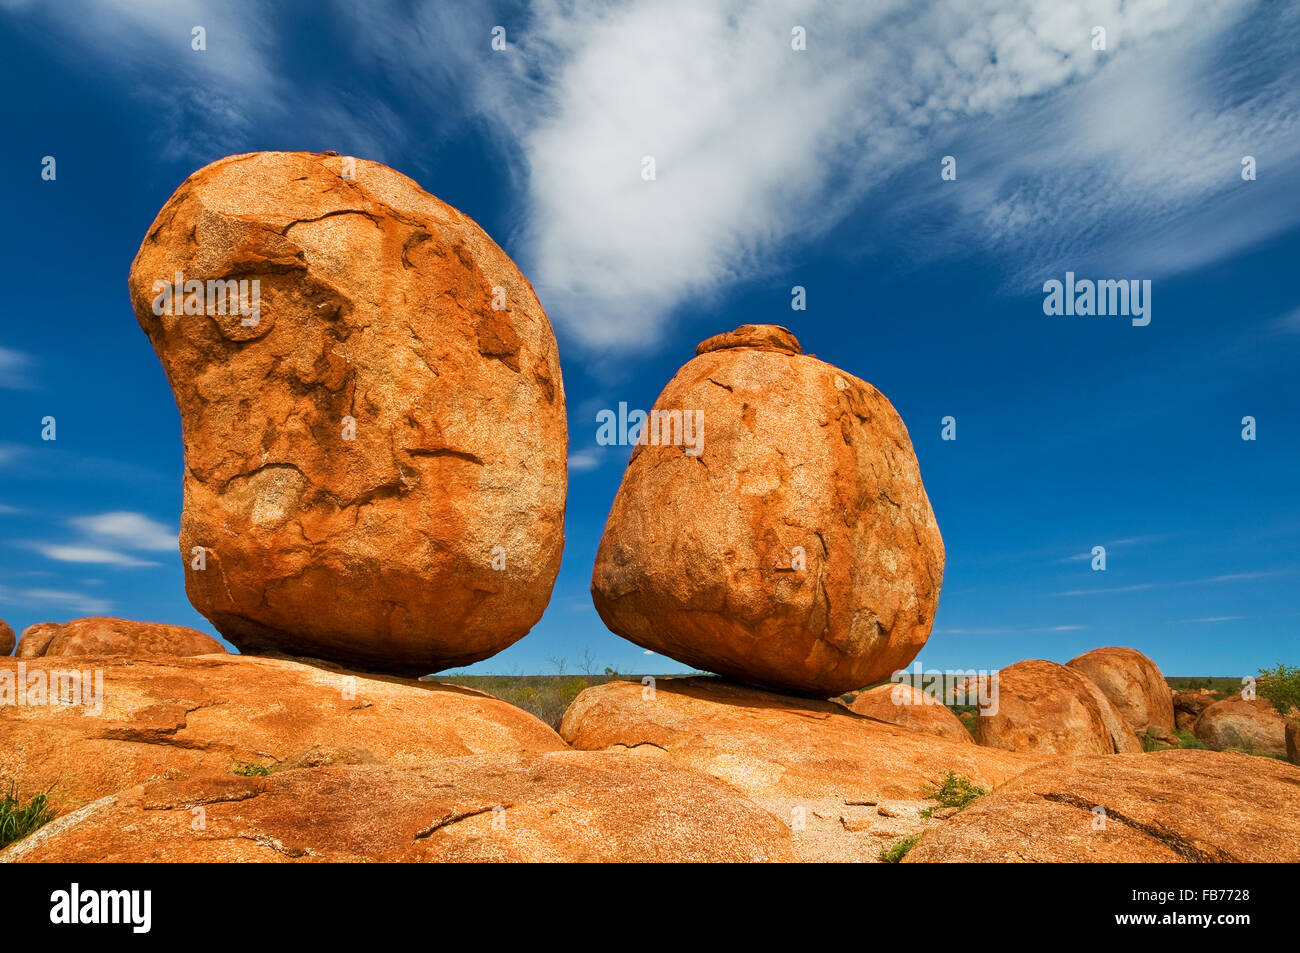 Rock formation of Devils Marbles perfectly in balance. - Stock Image